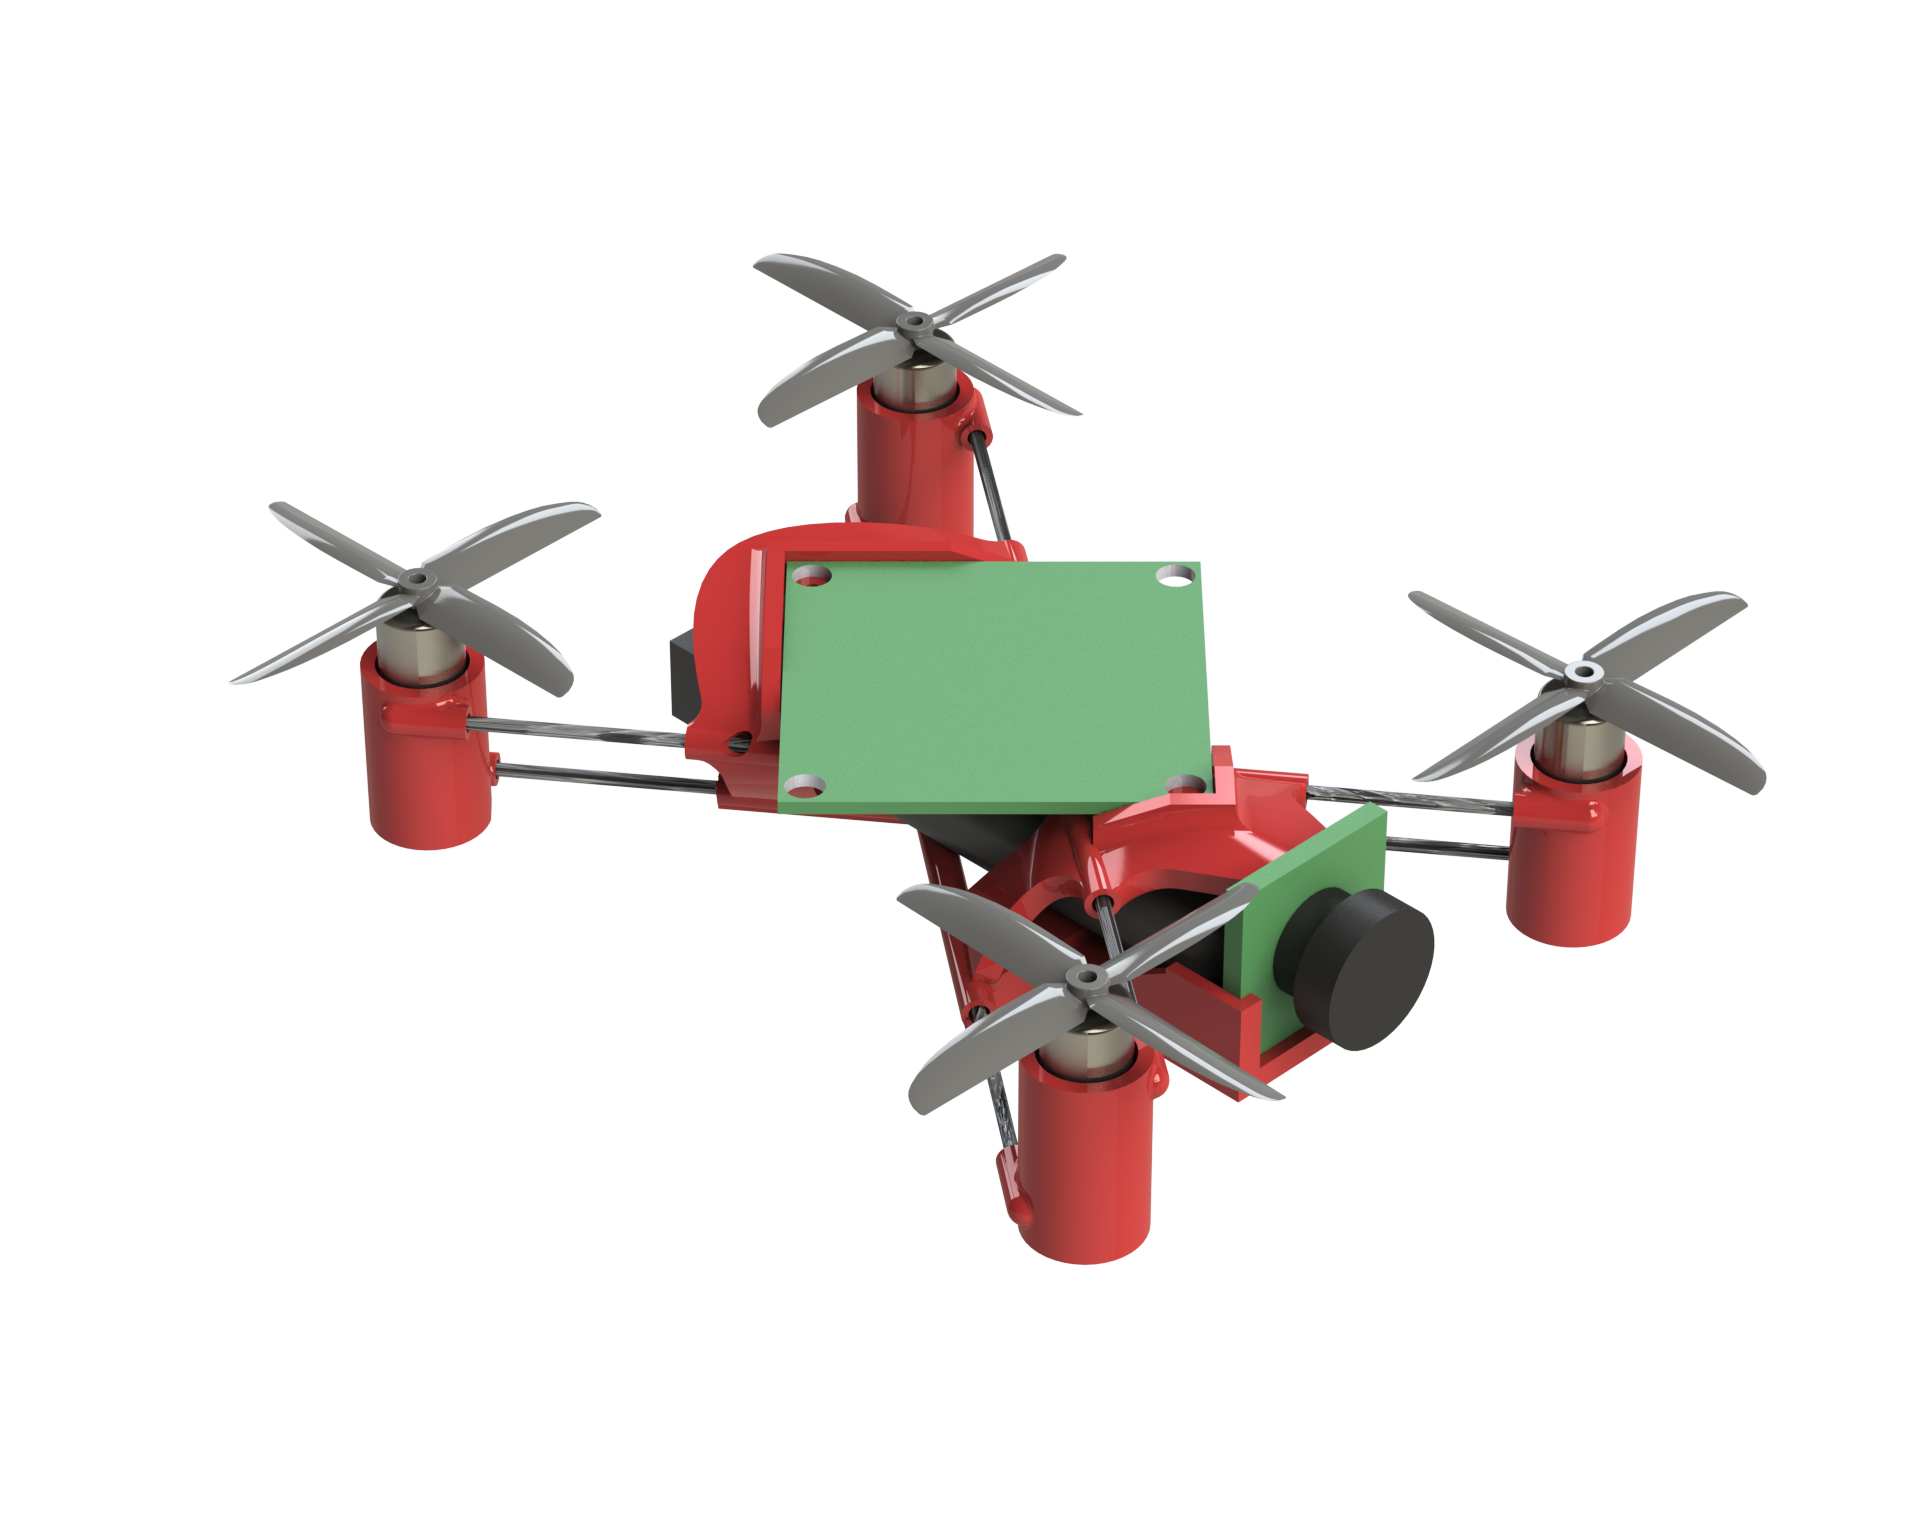 Tiny Whoop P2 Carbon Reinforced Racing Drone